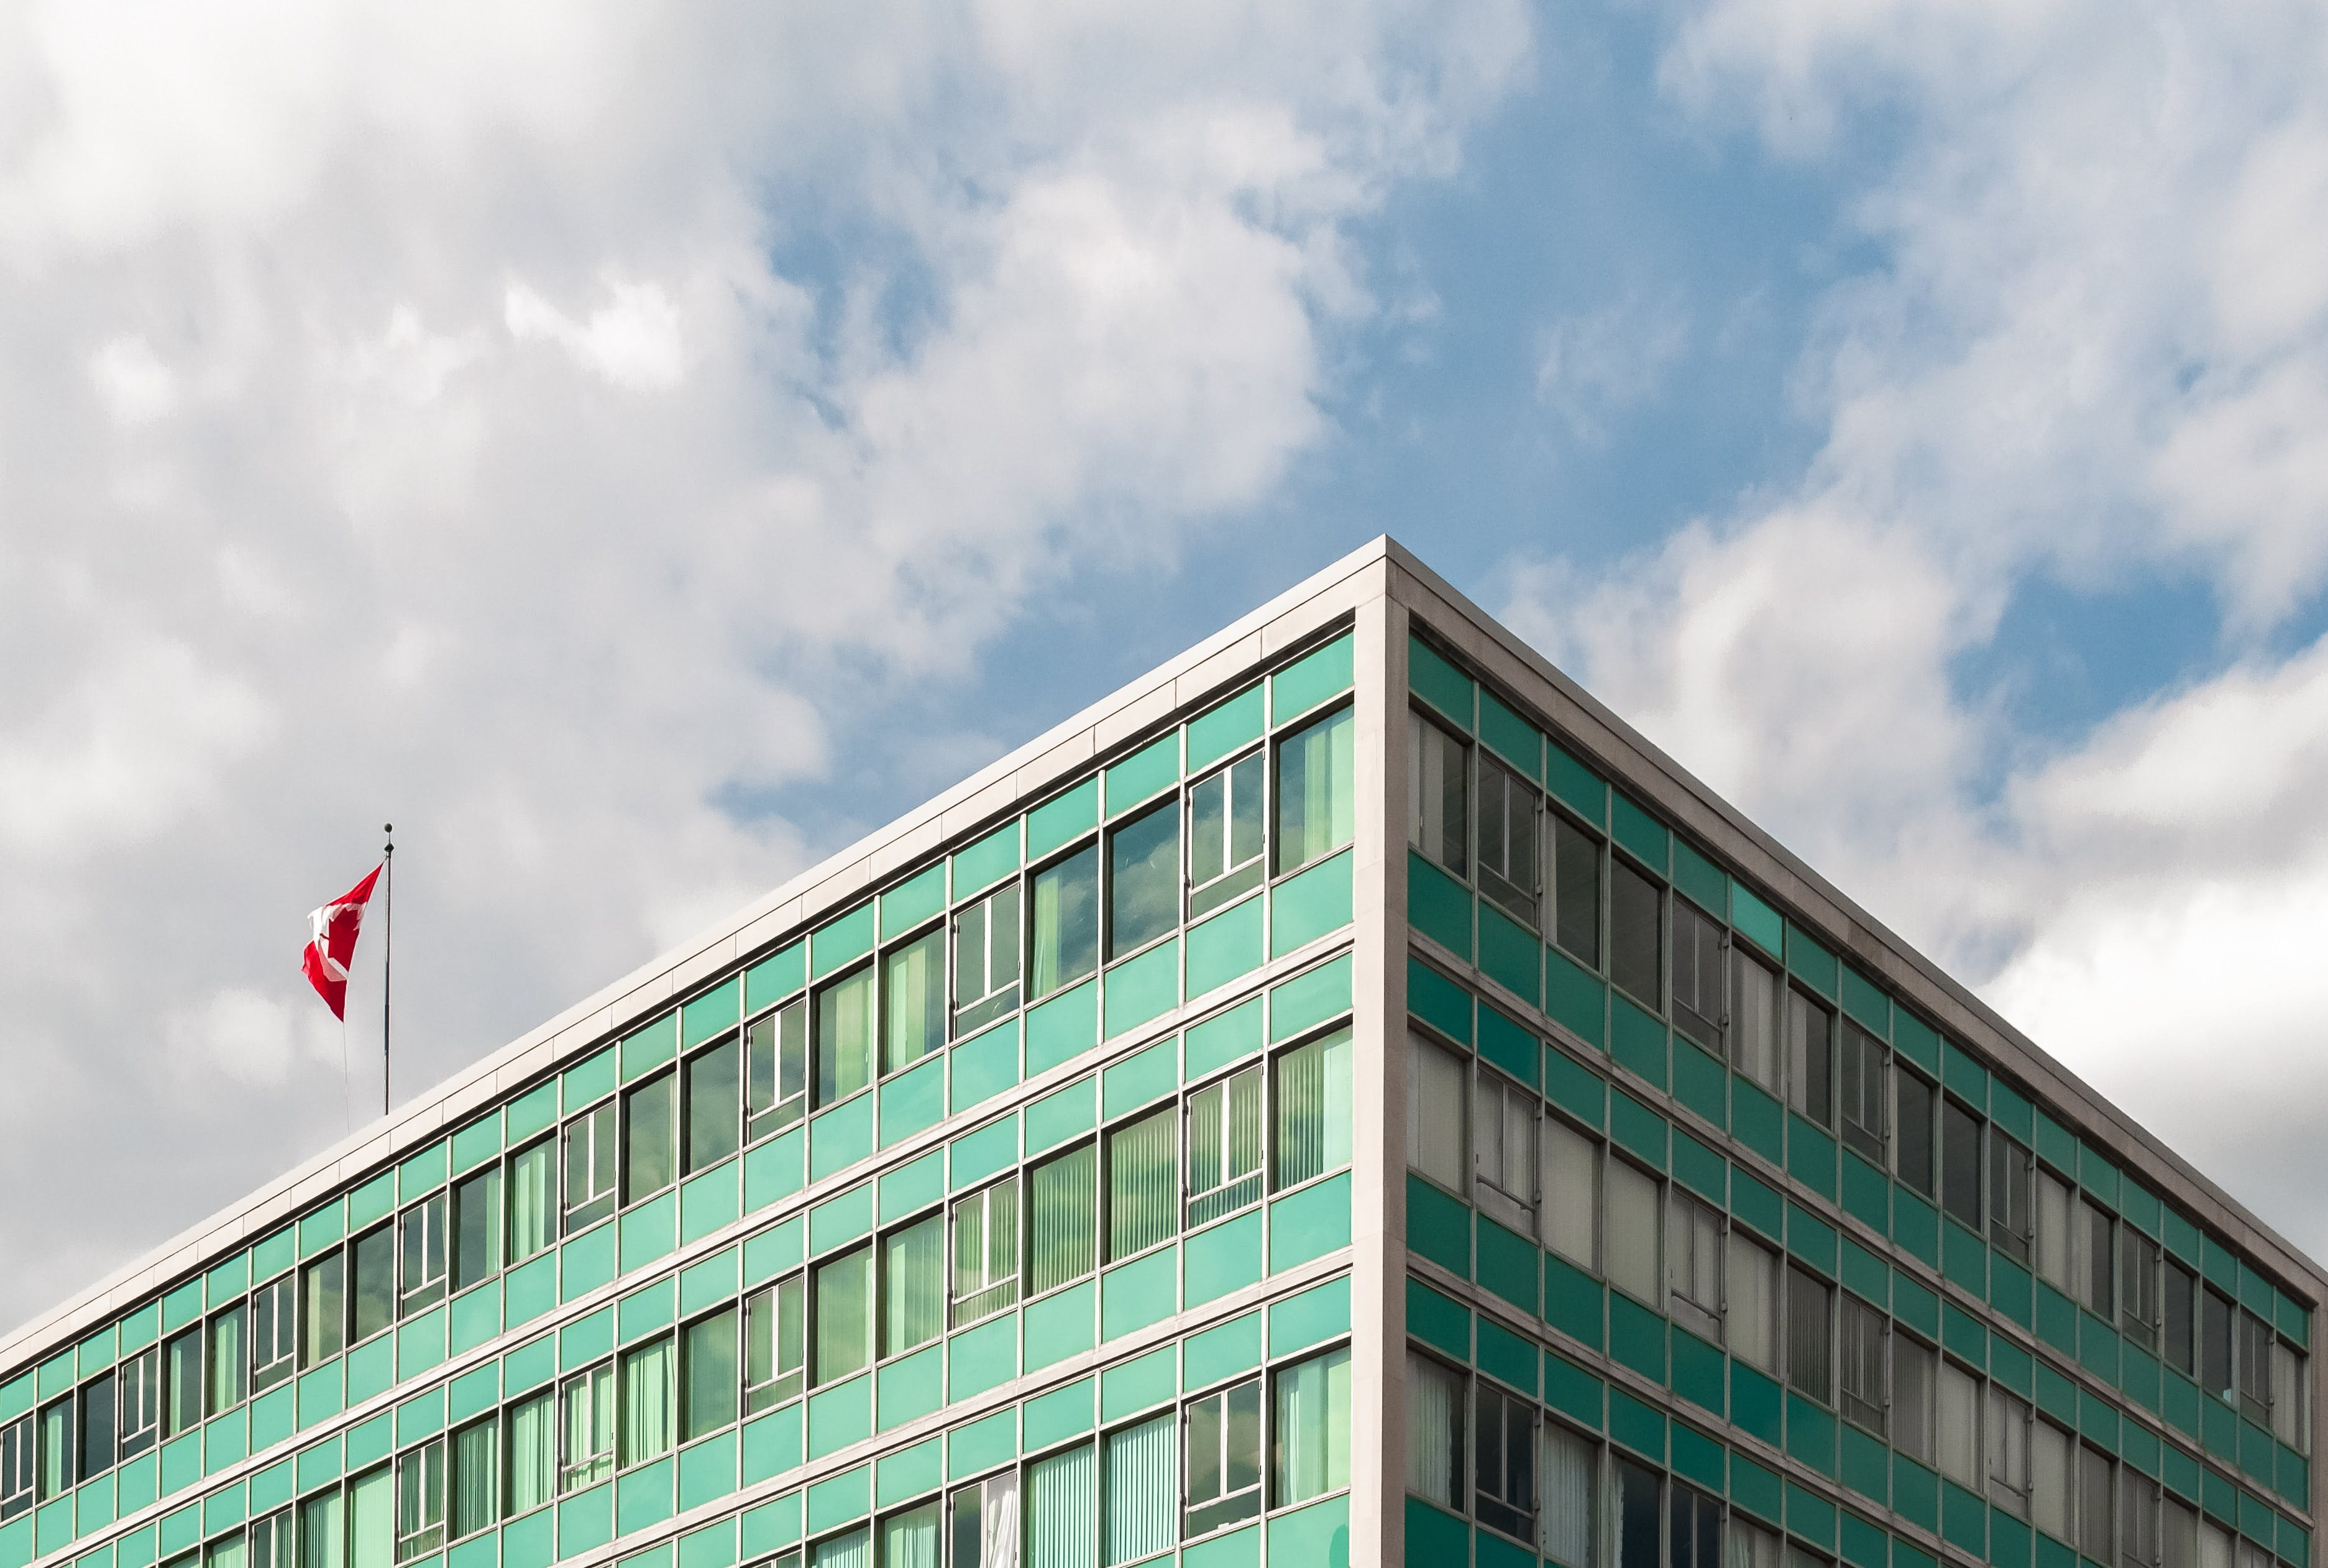 Low Angle Photography of a Building